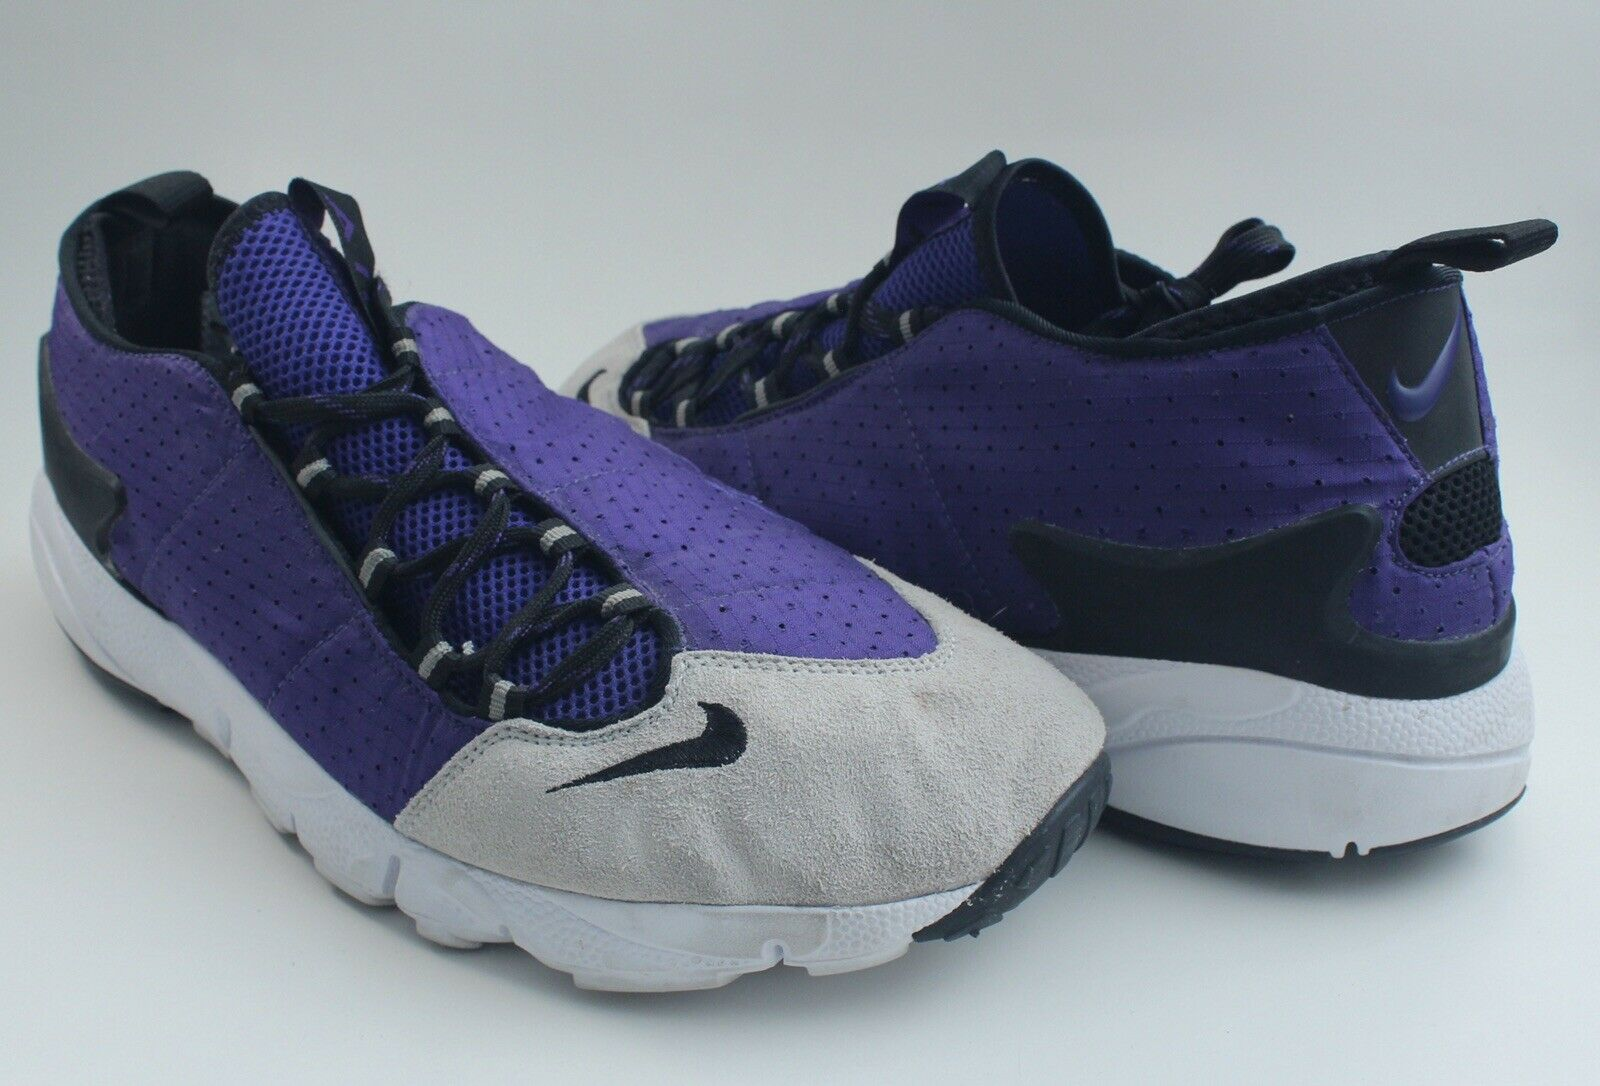 Nike Men Air Footscape Motion Purple Black Pure Platinum Sz men's 13 599470 501